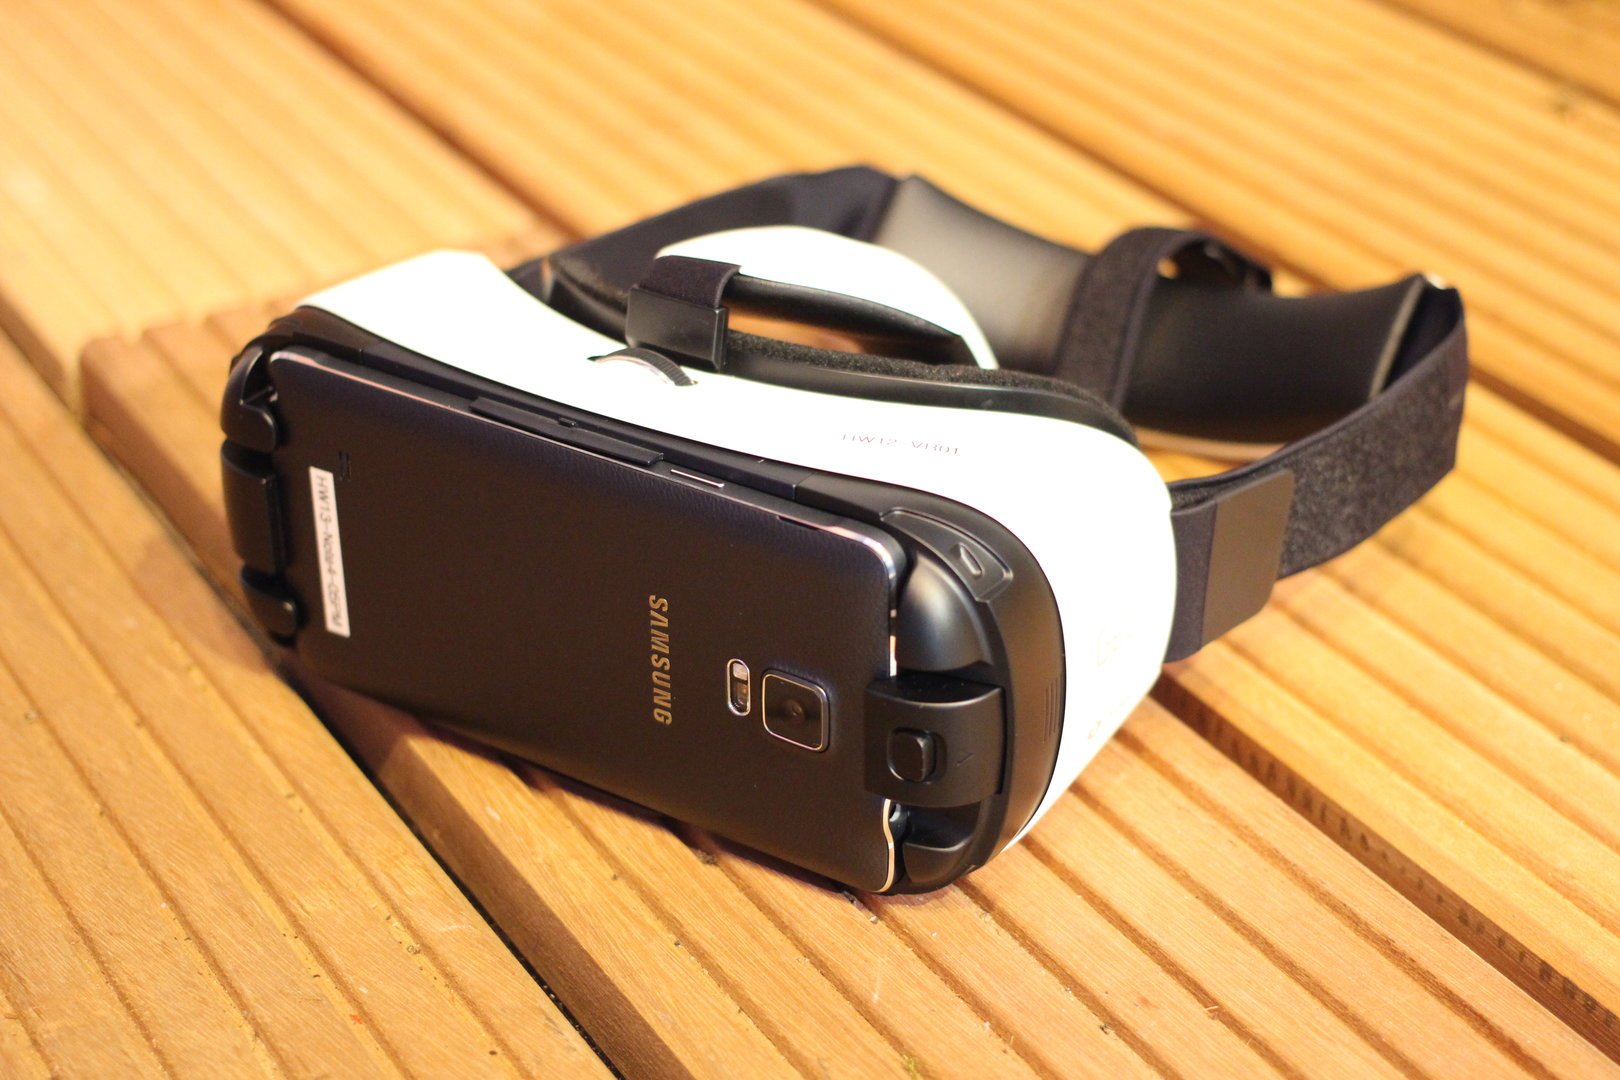 Die Galaxy Gear VR mit installiertem Galaxy Note 4